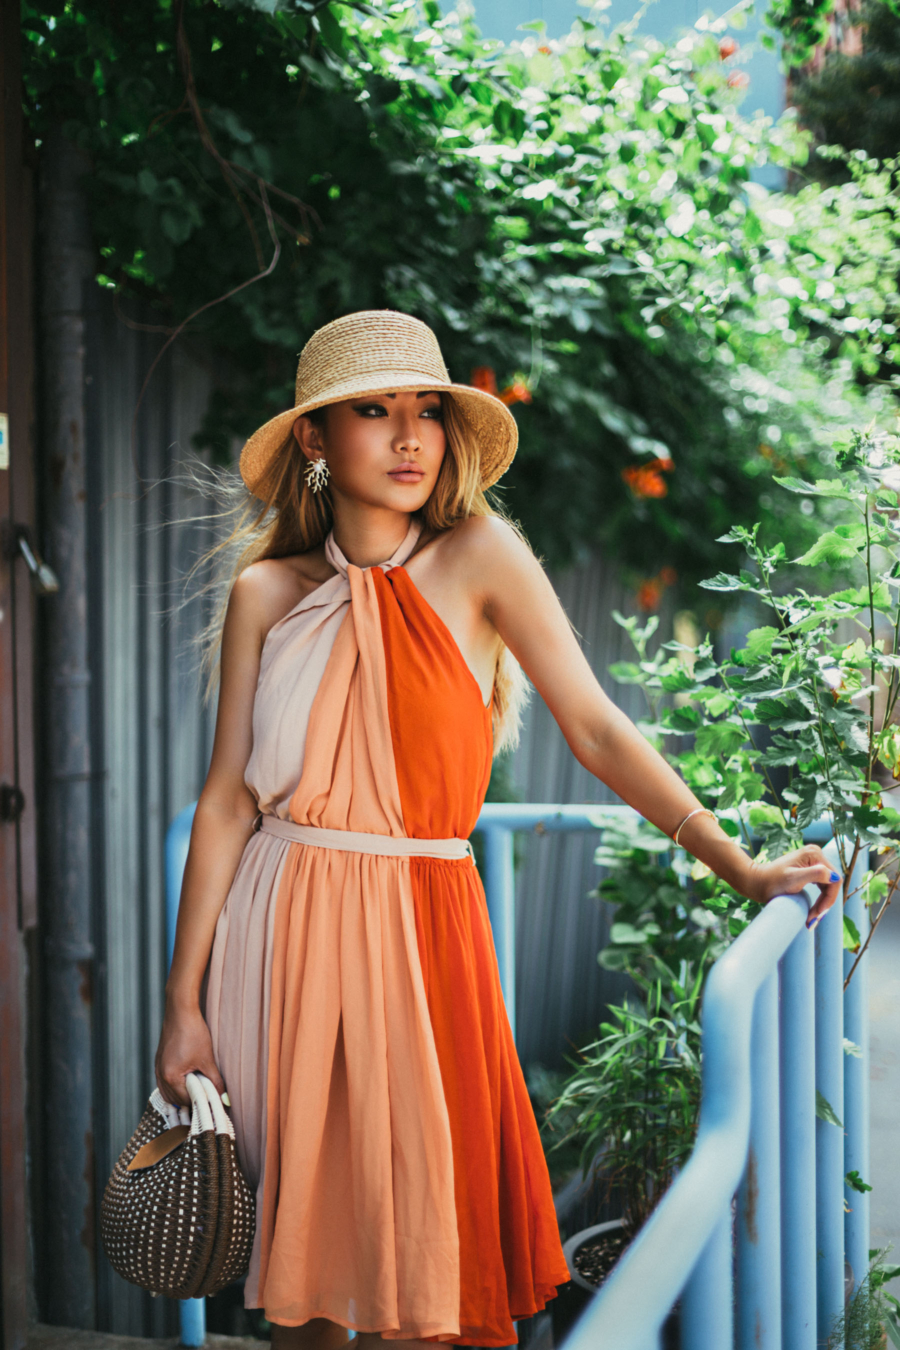 Essential Resort Wear for Your Next Vacation - French Connection Summer Dress, pleated dress, colorblock dress // NotJessFashion.com